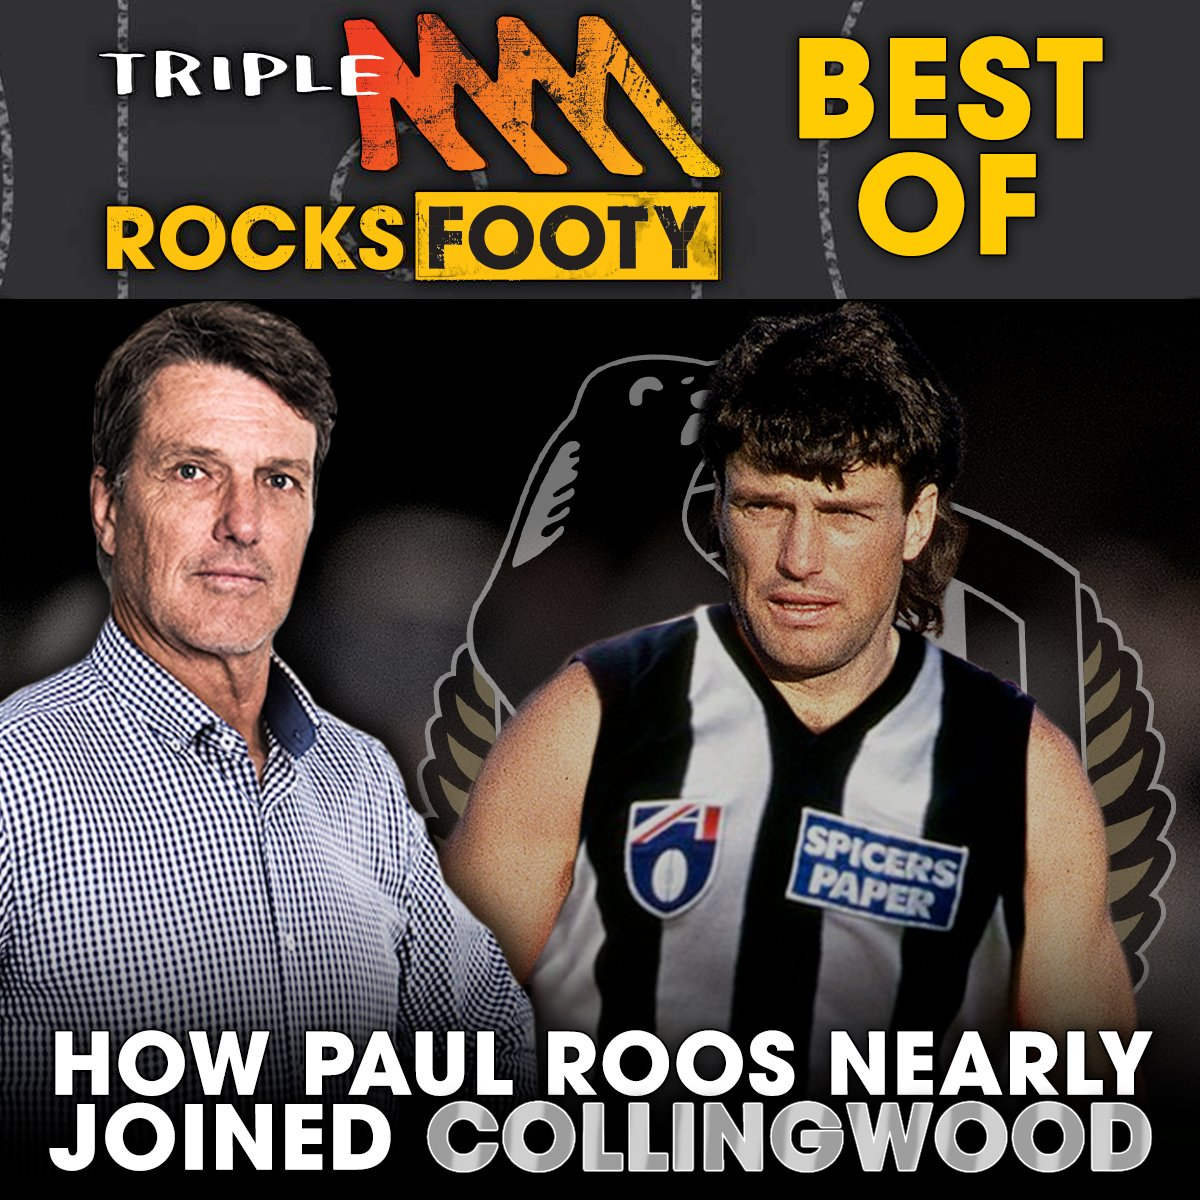 Paul Roos' Incredible Story About How He Nearly Joined Collingwood